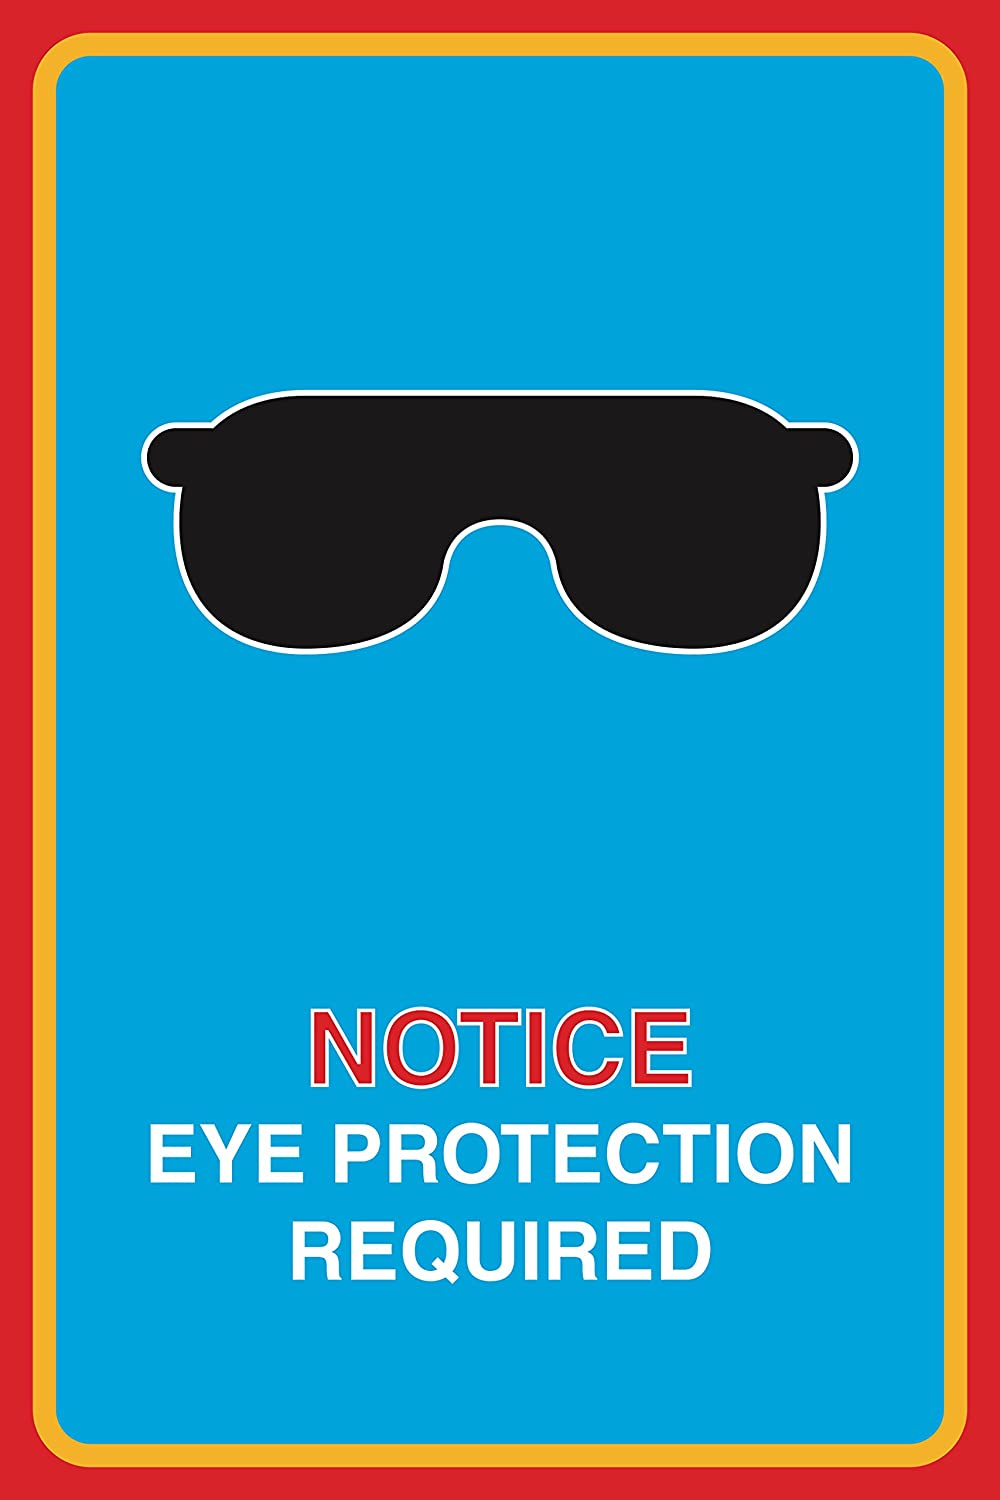 12x18 Notice Eye Protection Required Print Sunglasses Picture Large Safety Medical Business Office Sign Aluminum Met